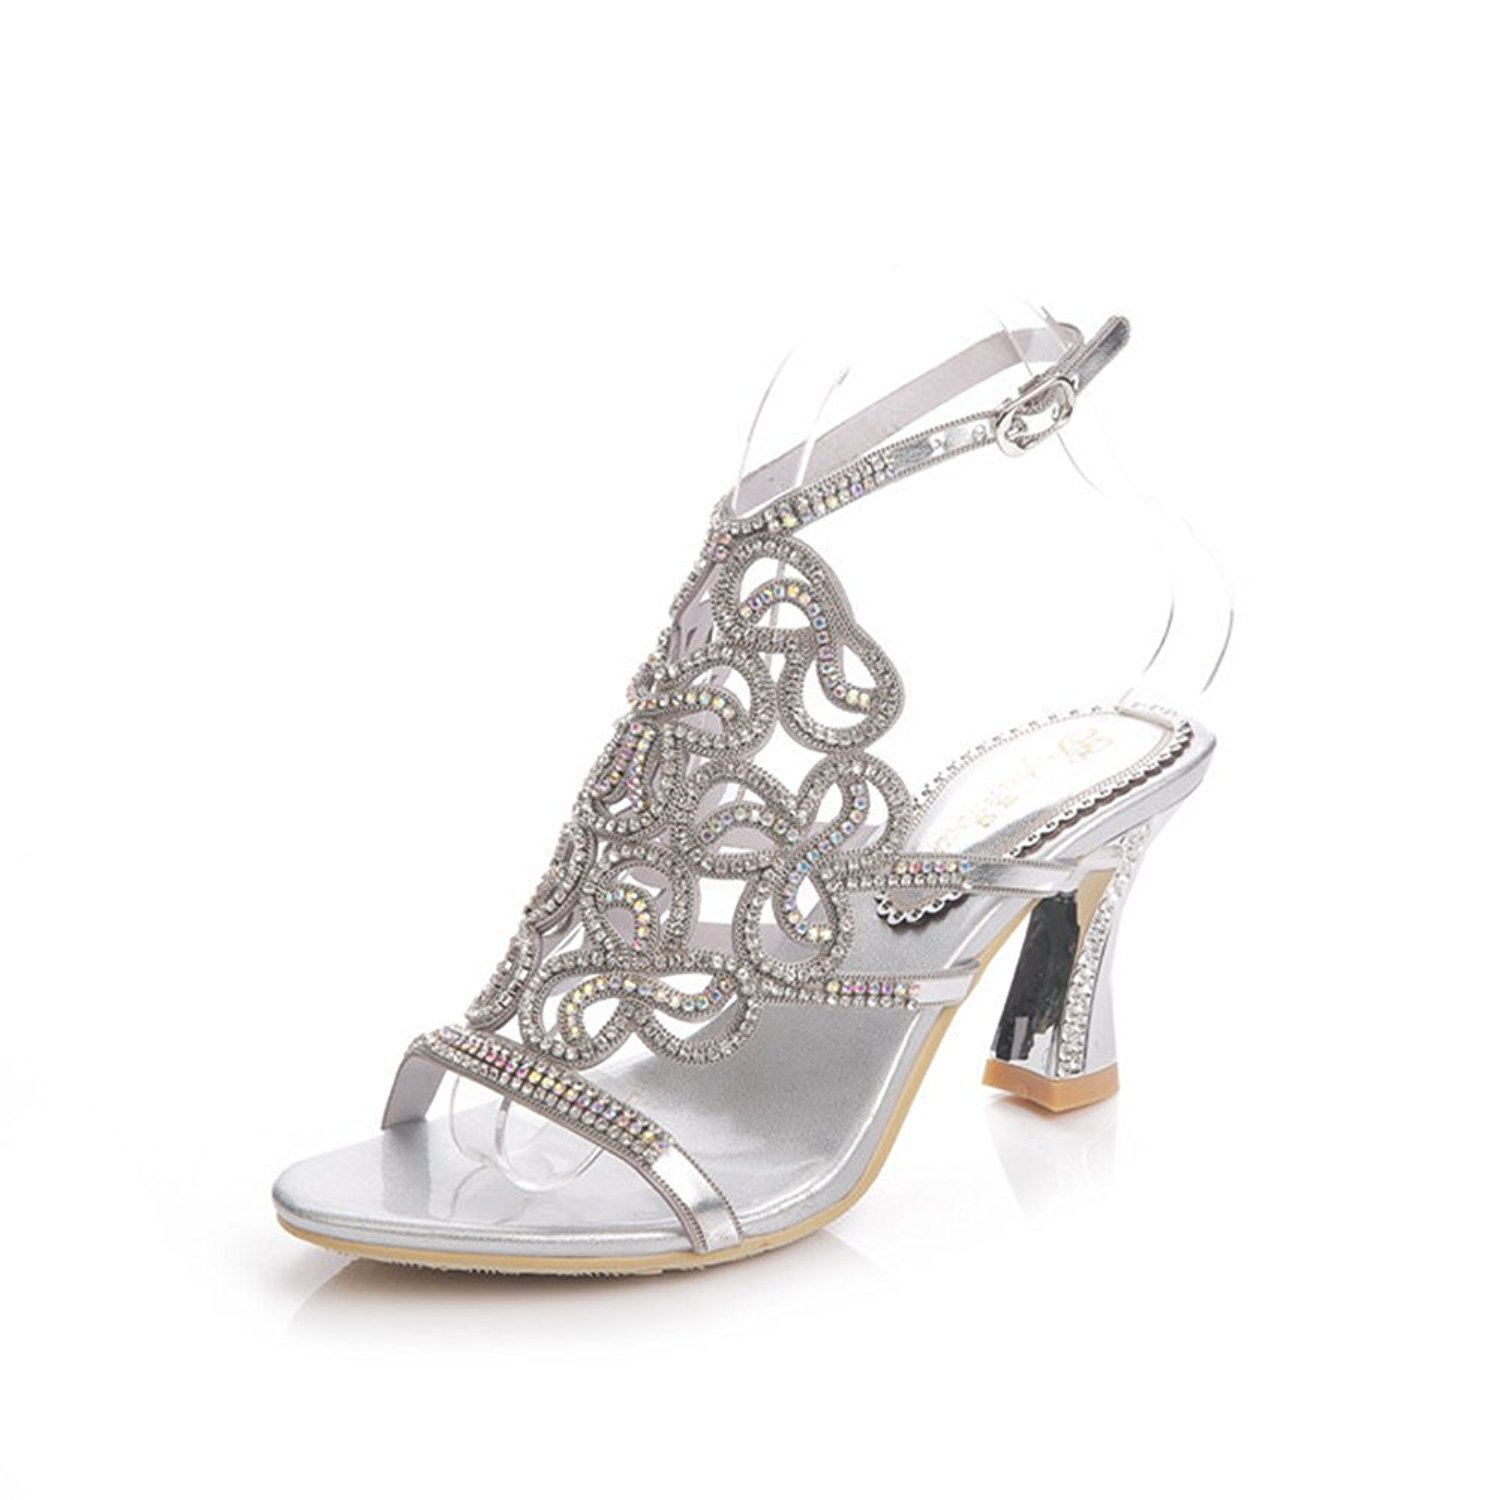 658225ab5d2b Get Quotations · Cai New Shoes High Heels Rhinestone Lady Summer Sandals  Diamond Sandals Small Size 34 Large Size